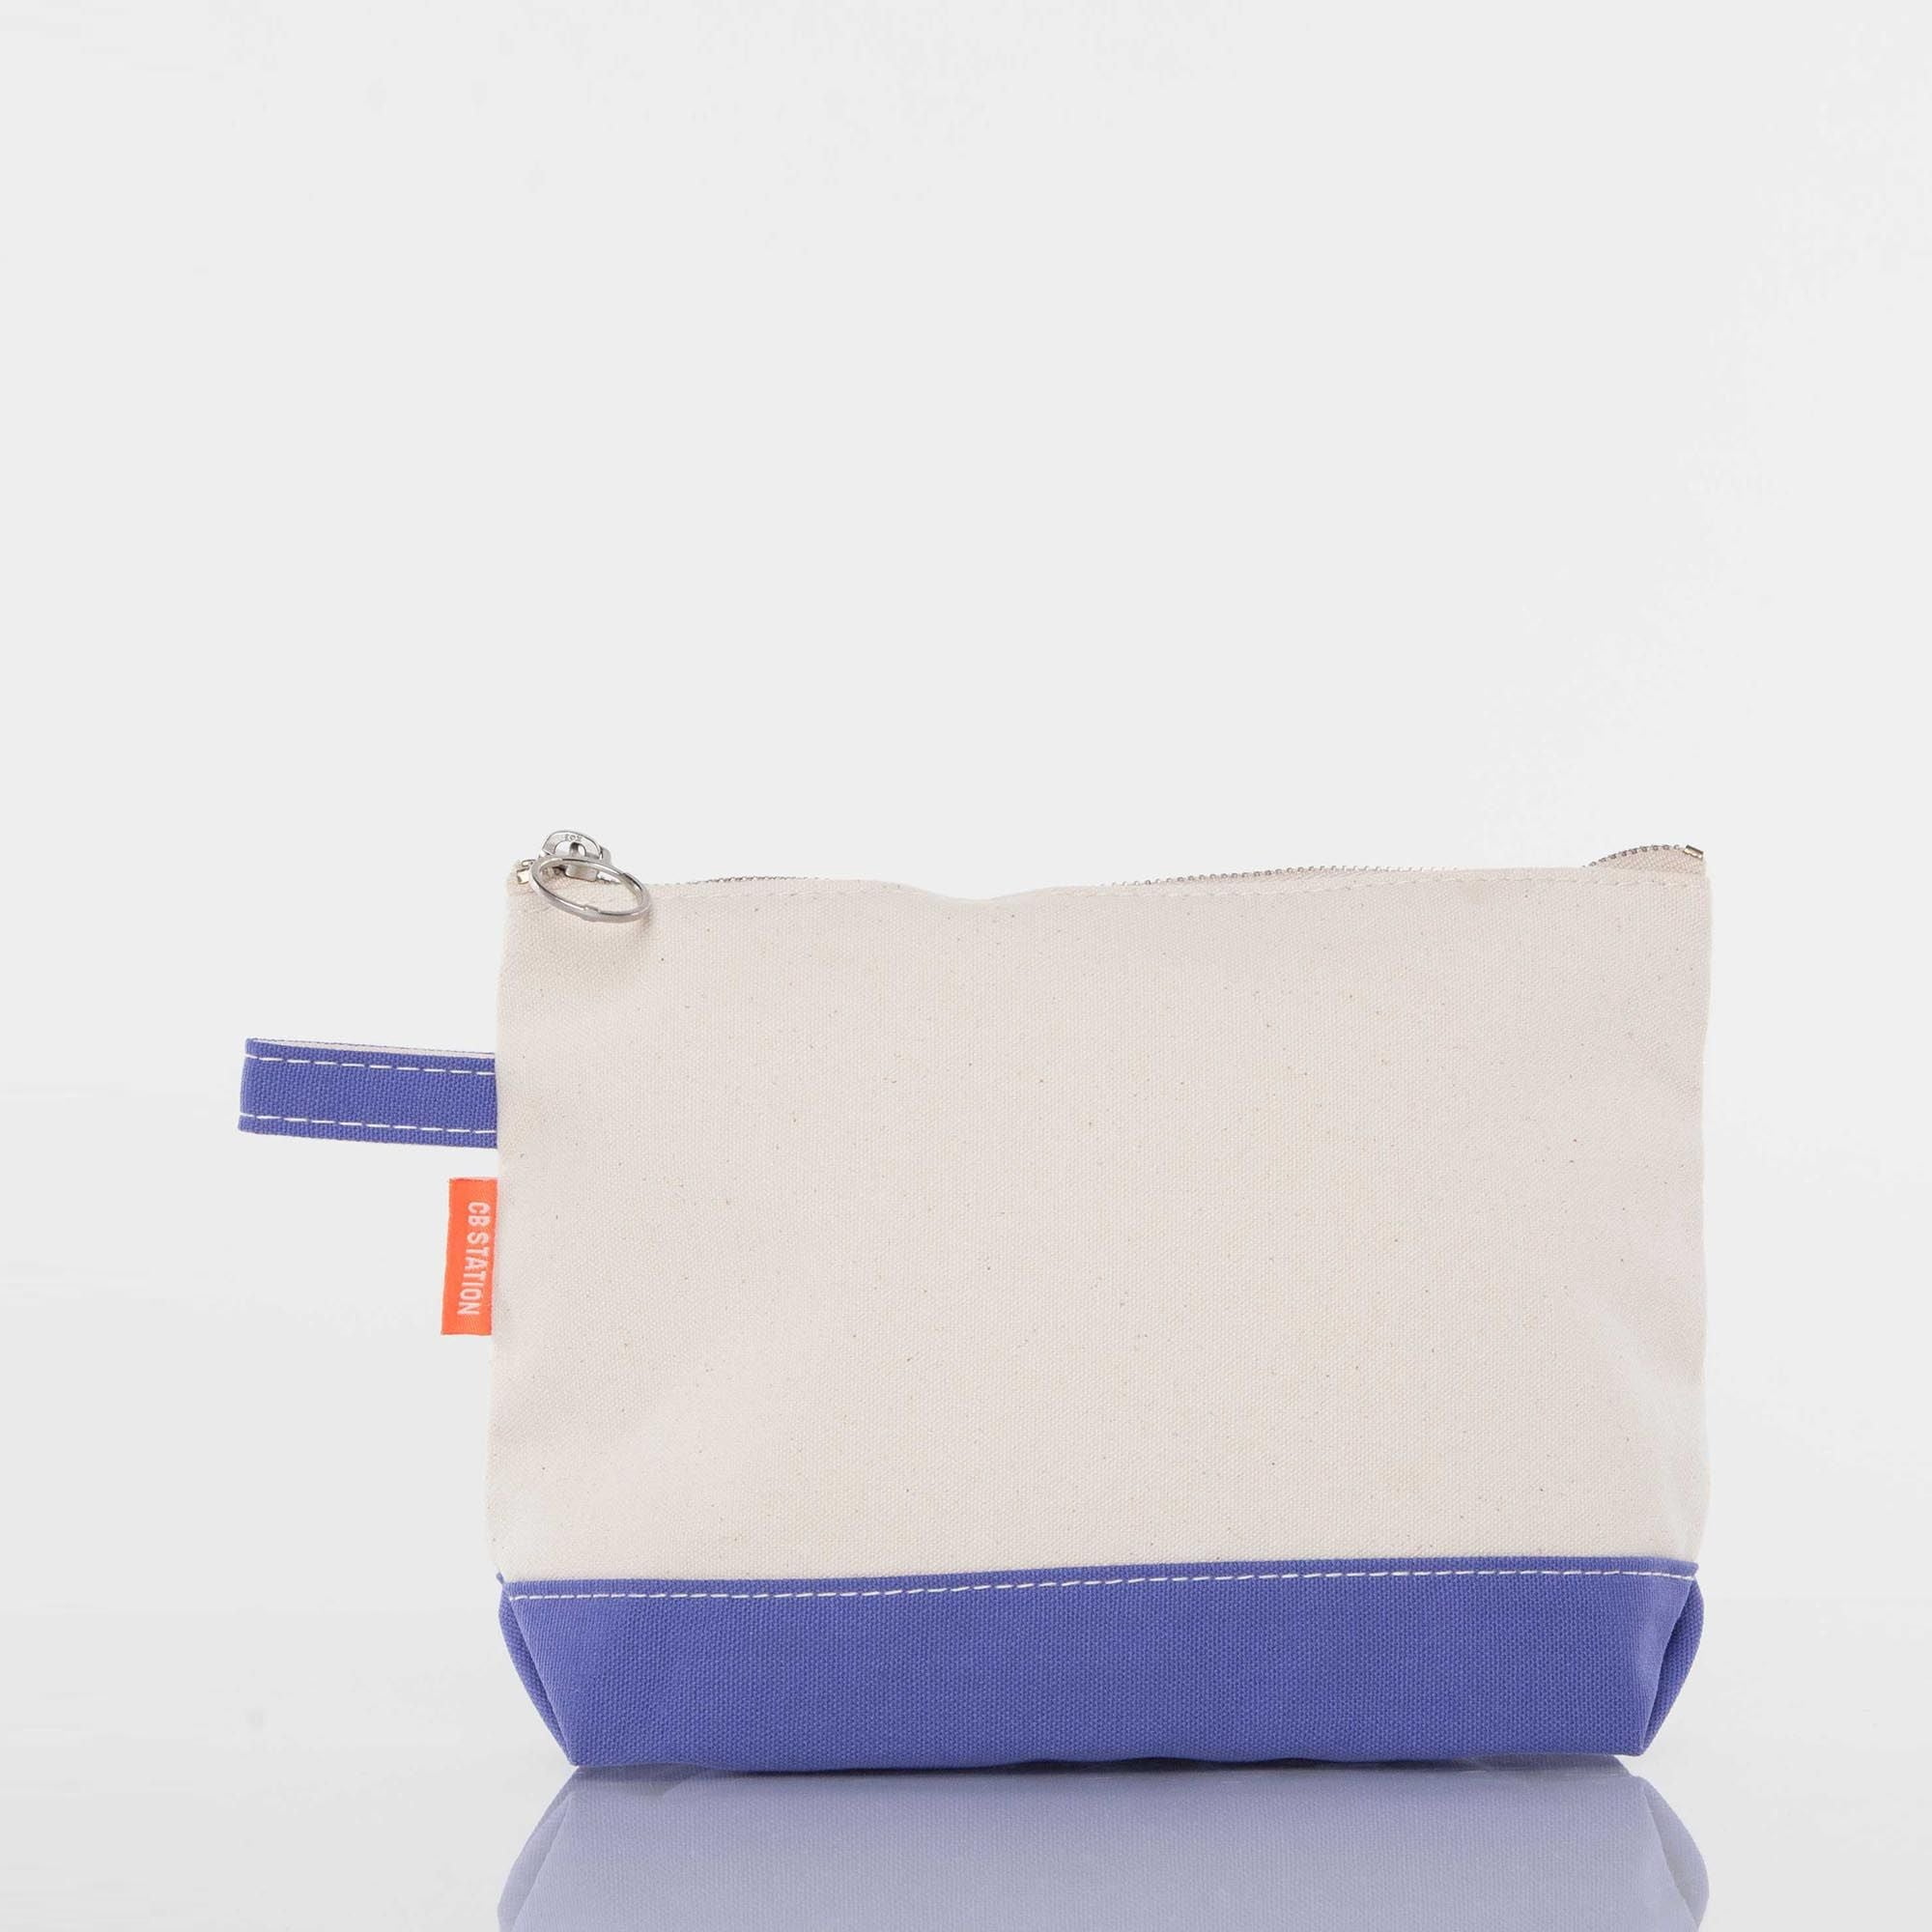 CANVAS MAKEUP BAG - VIOLET